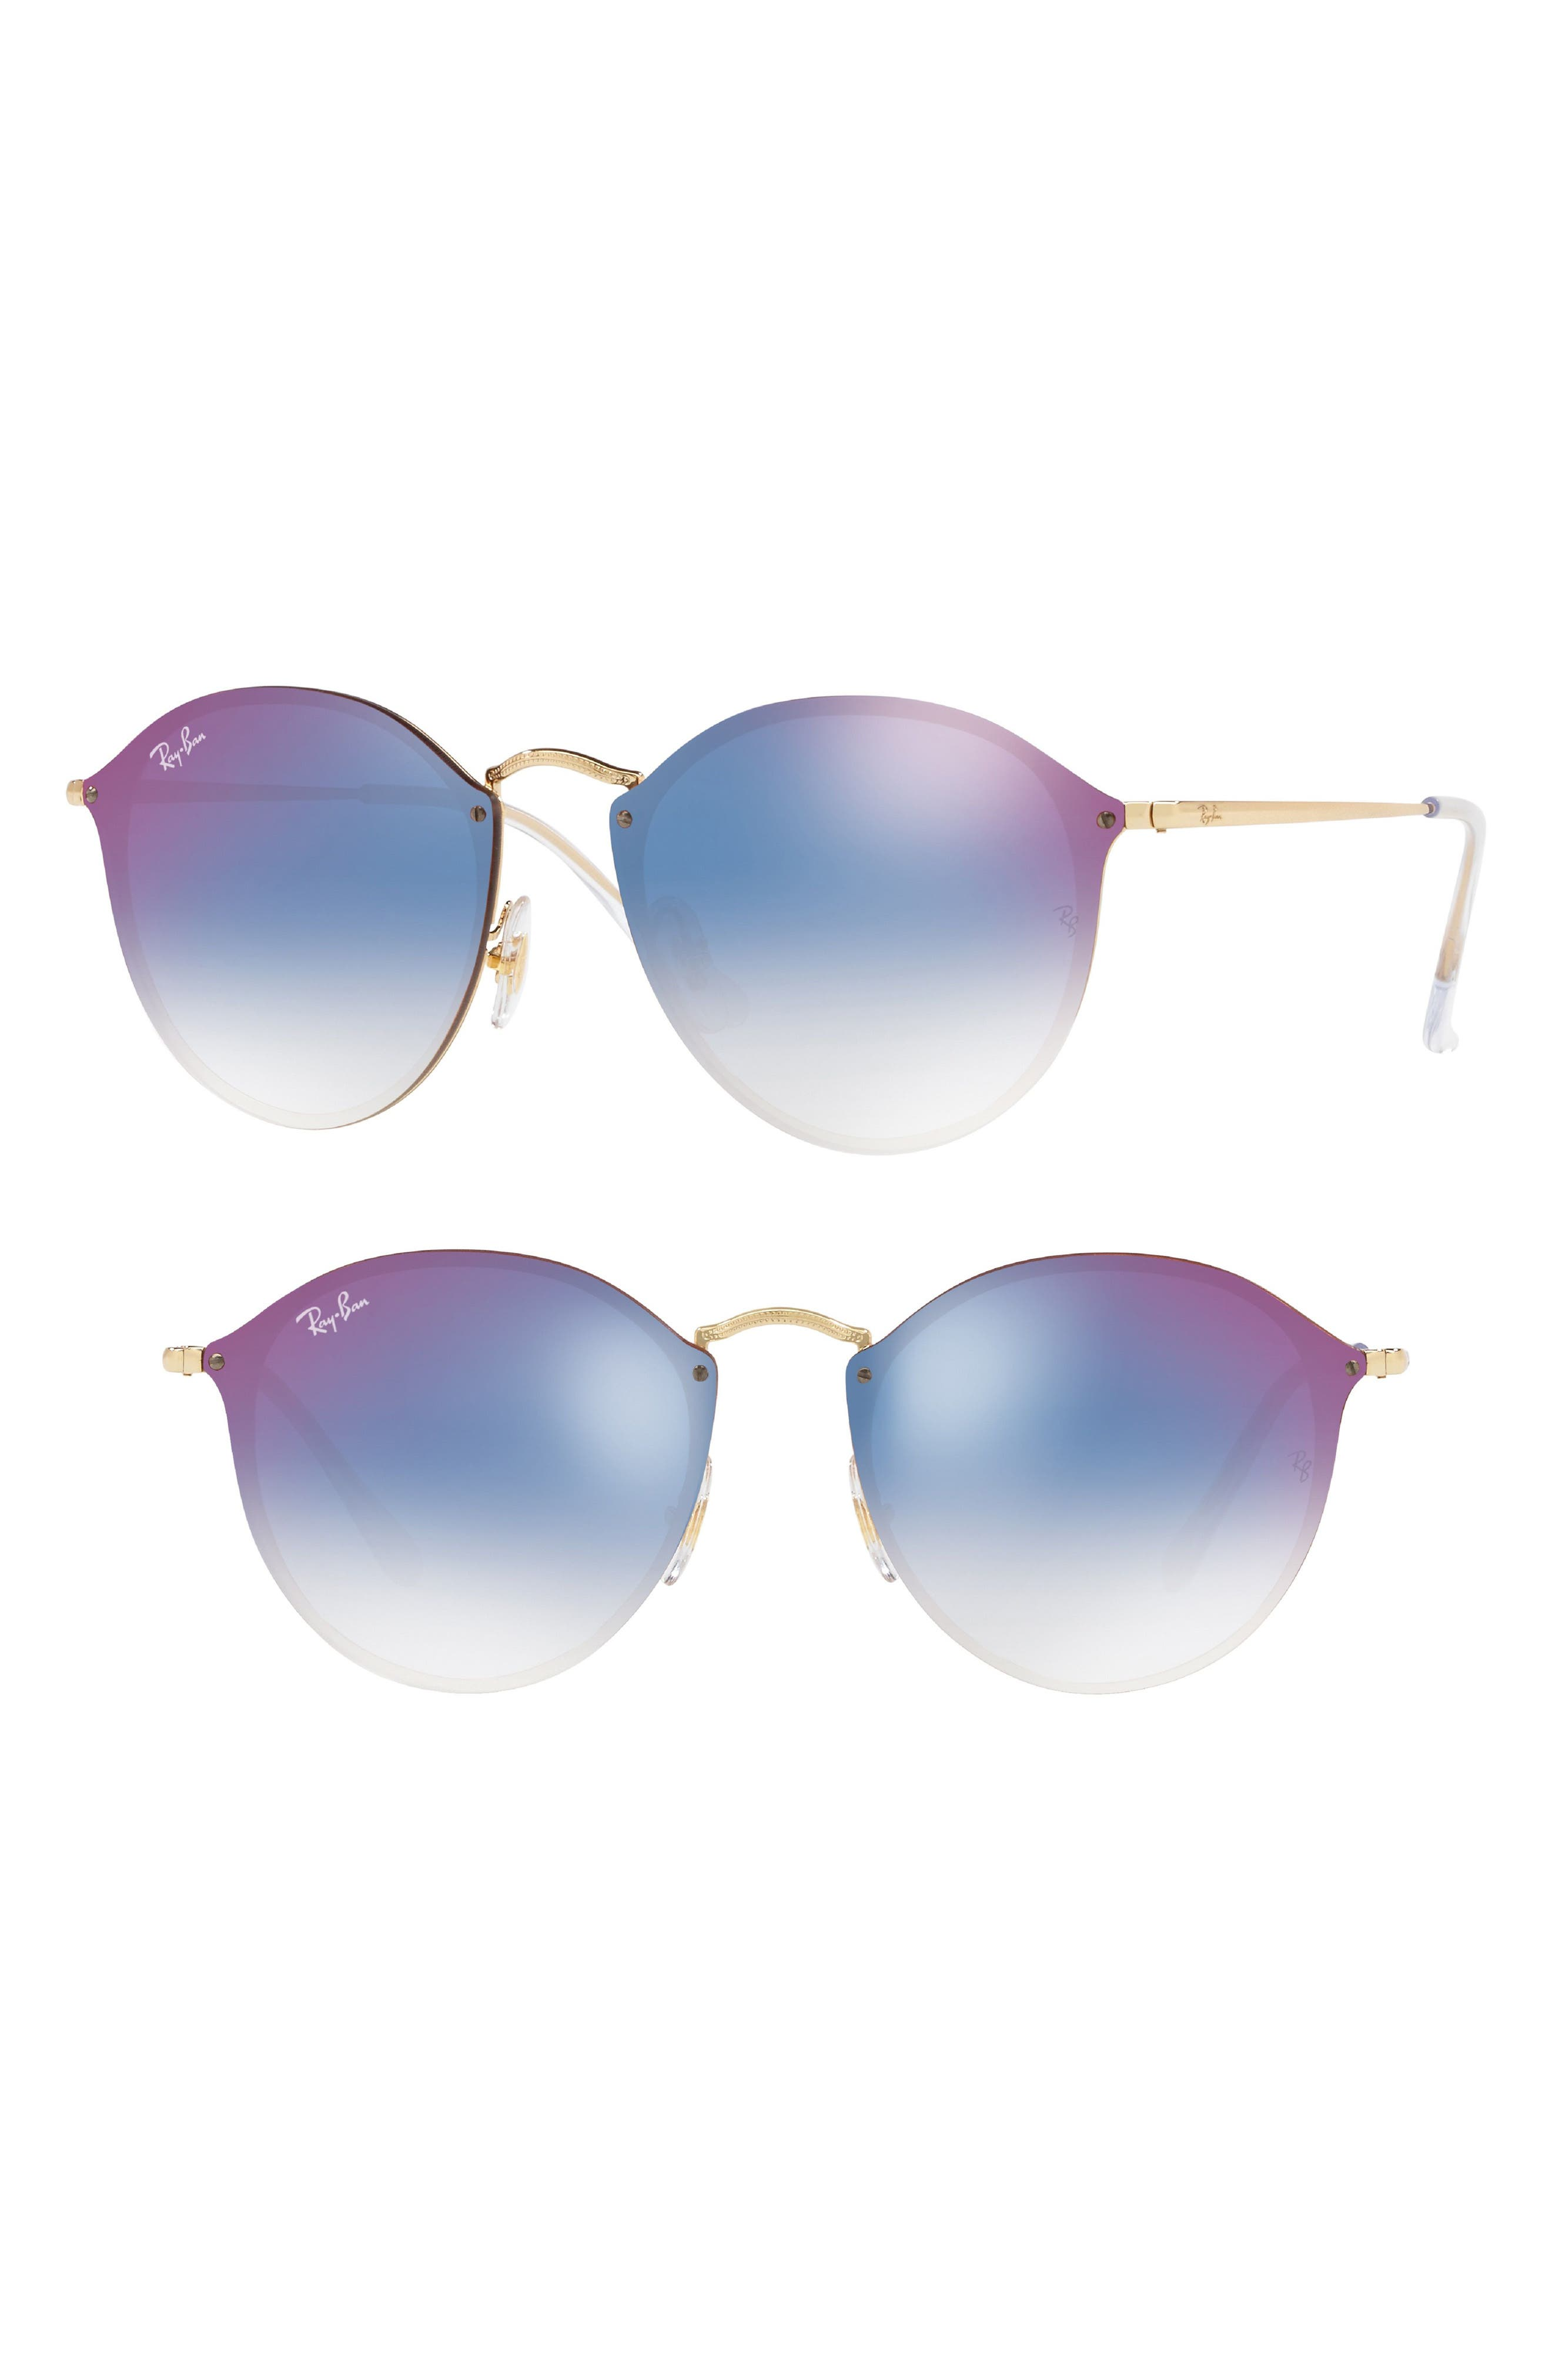 Blaze 59mm Round Mirrored Sunglasses,                         Main,                         color, Gold